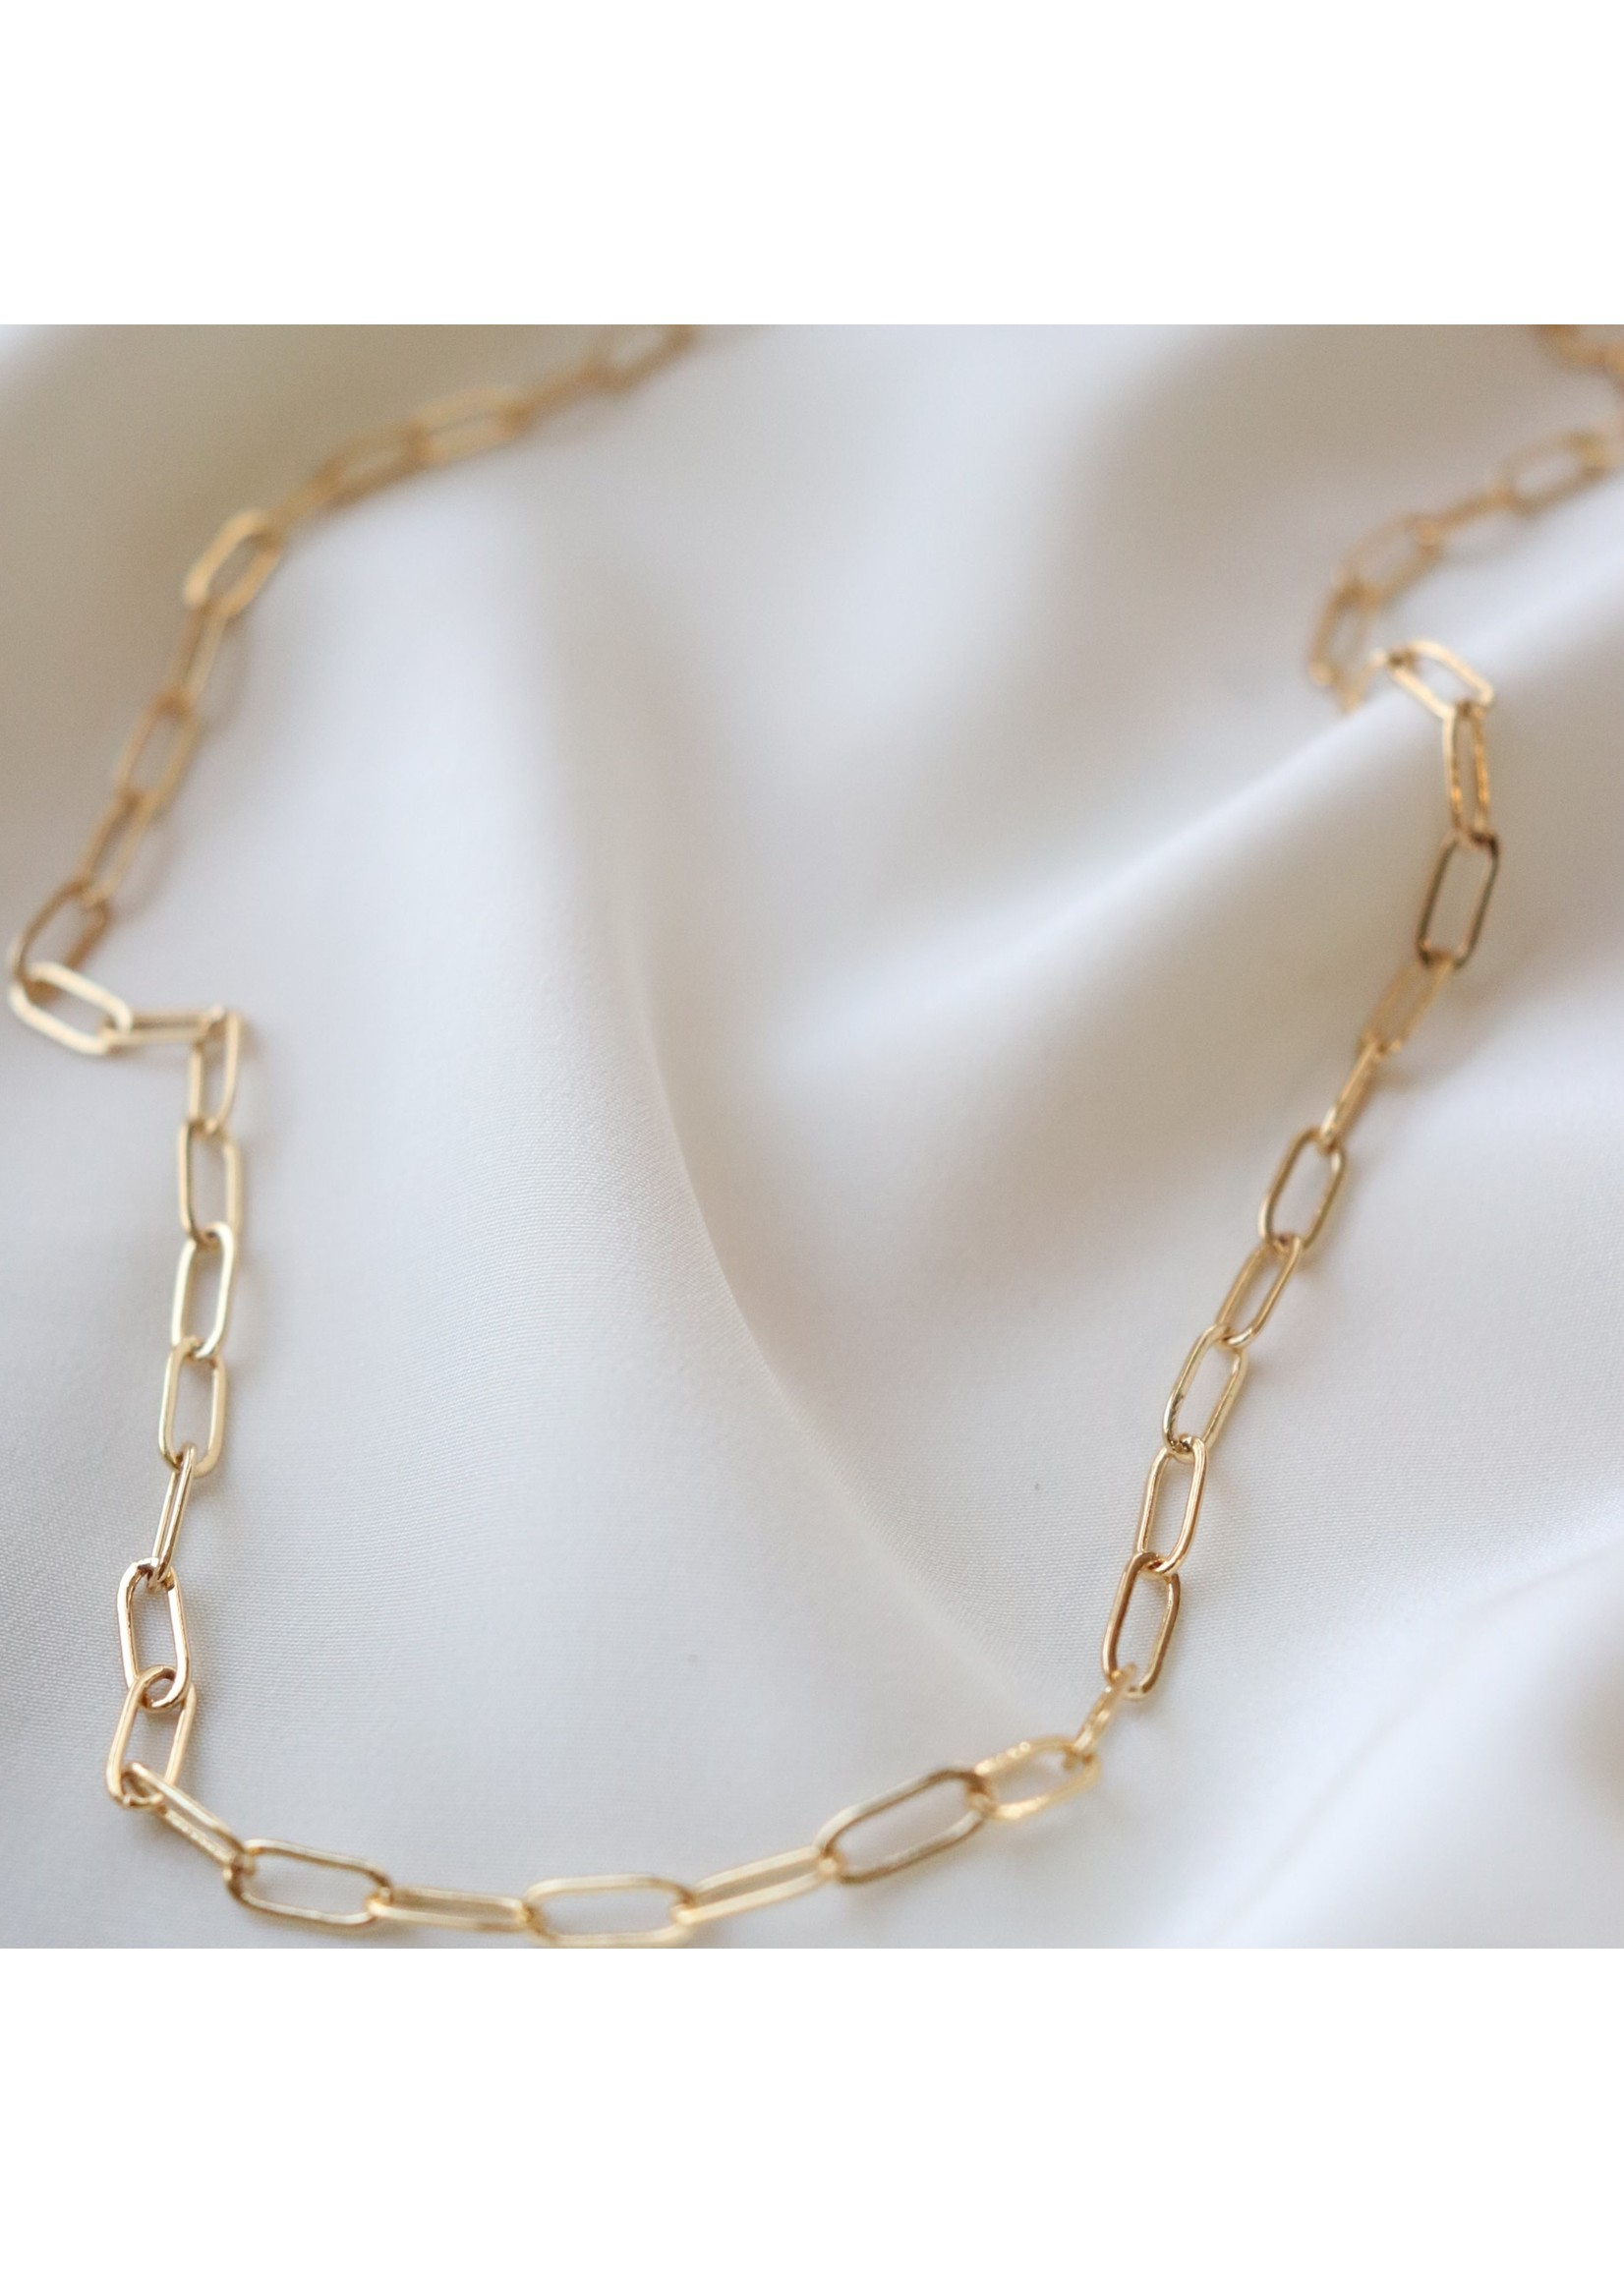 Cedar and Cypress Designs Small Link Chain Necklace